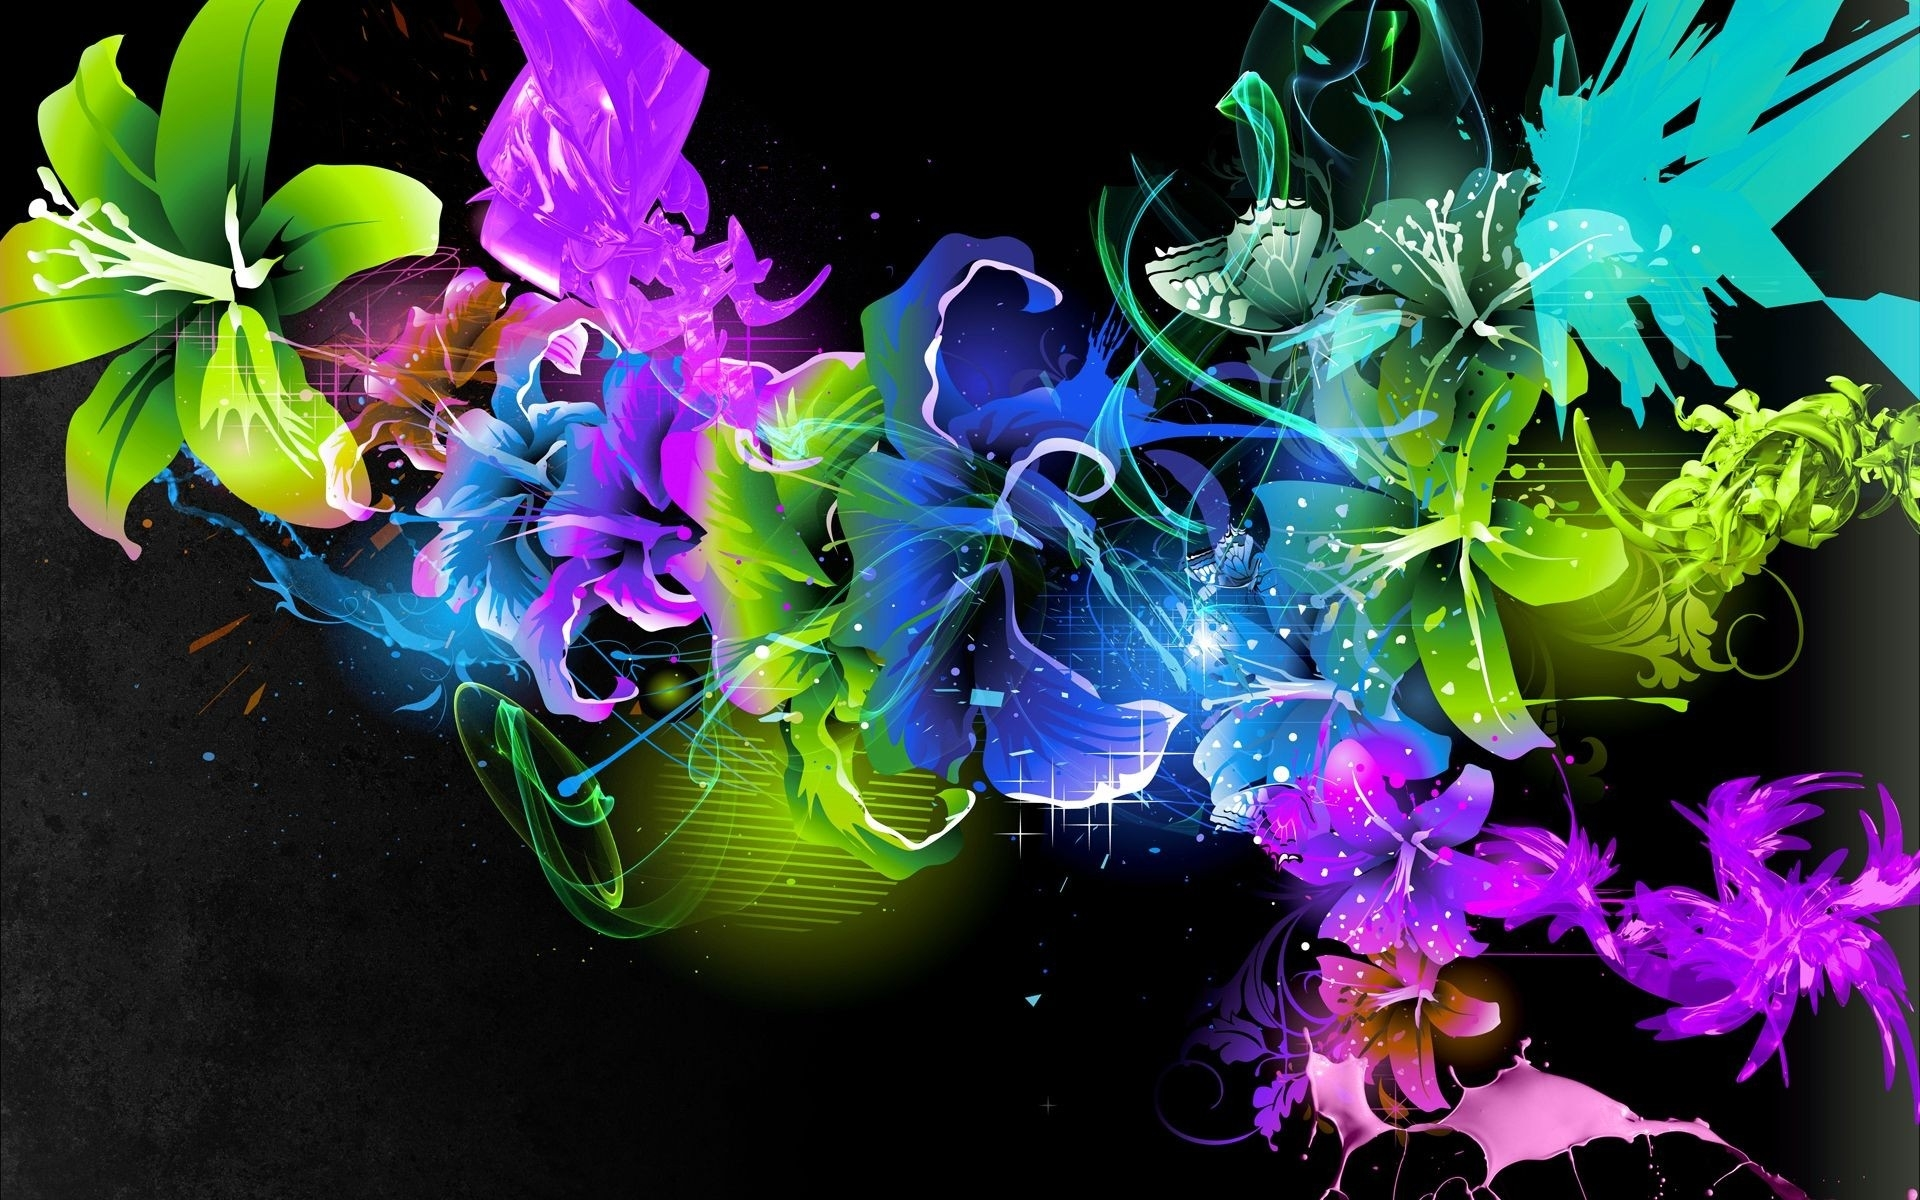 abstract flower wallpapers for deskto